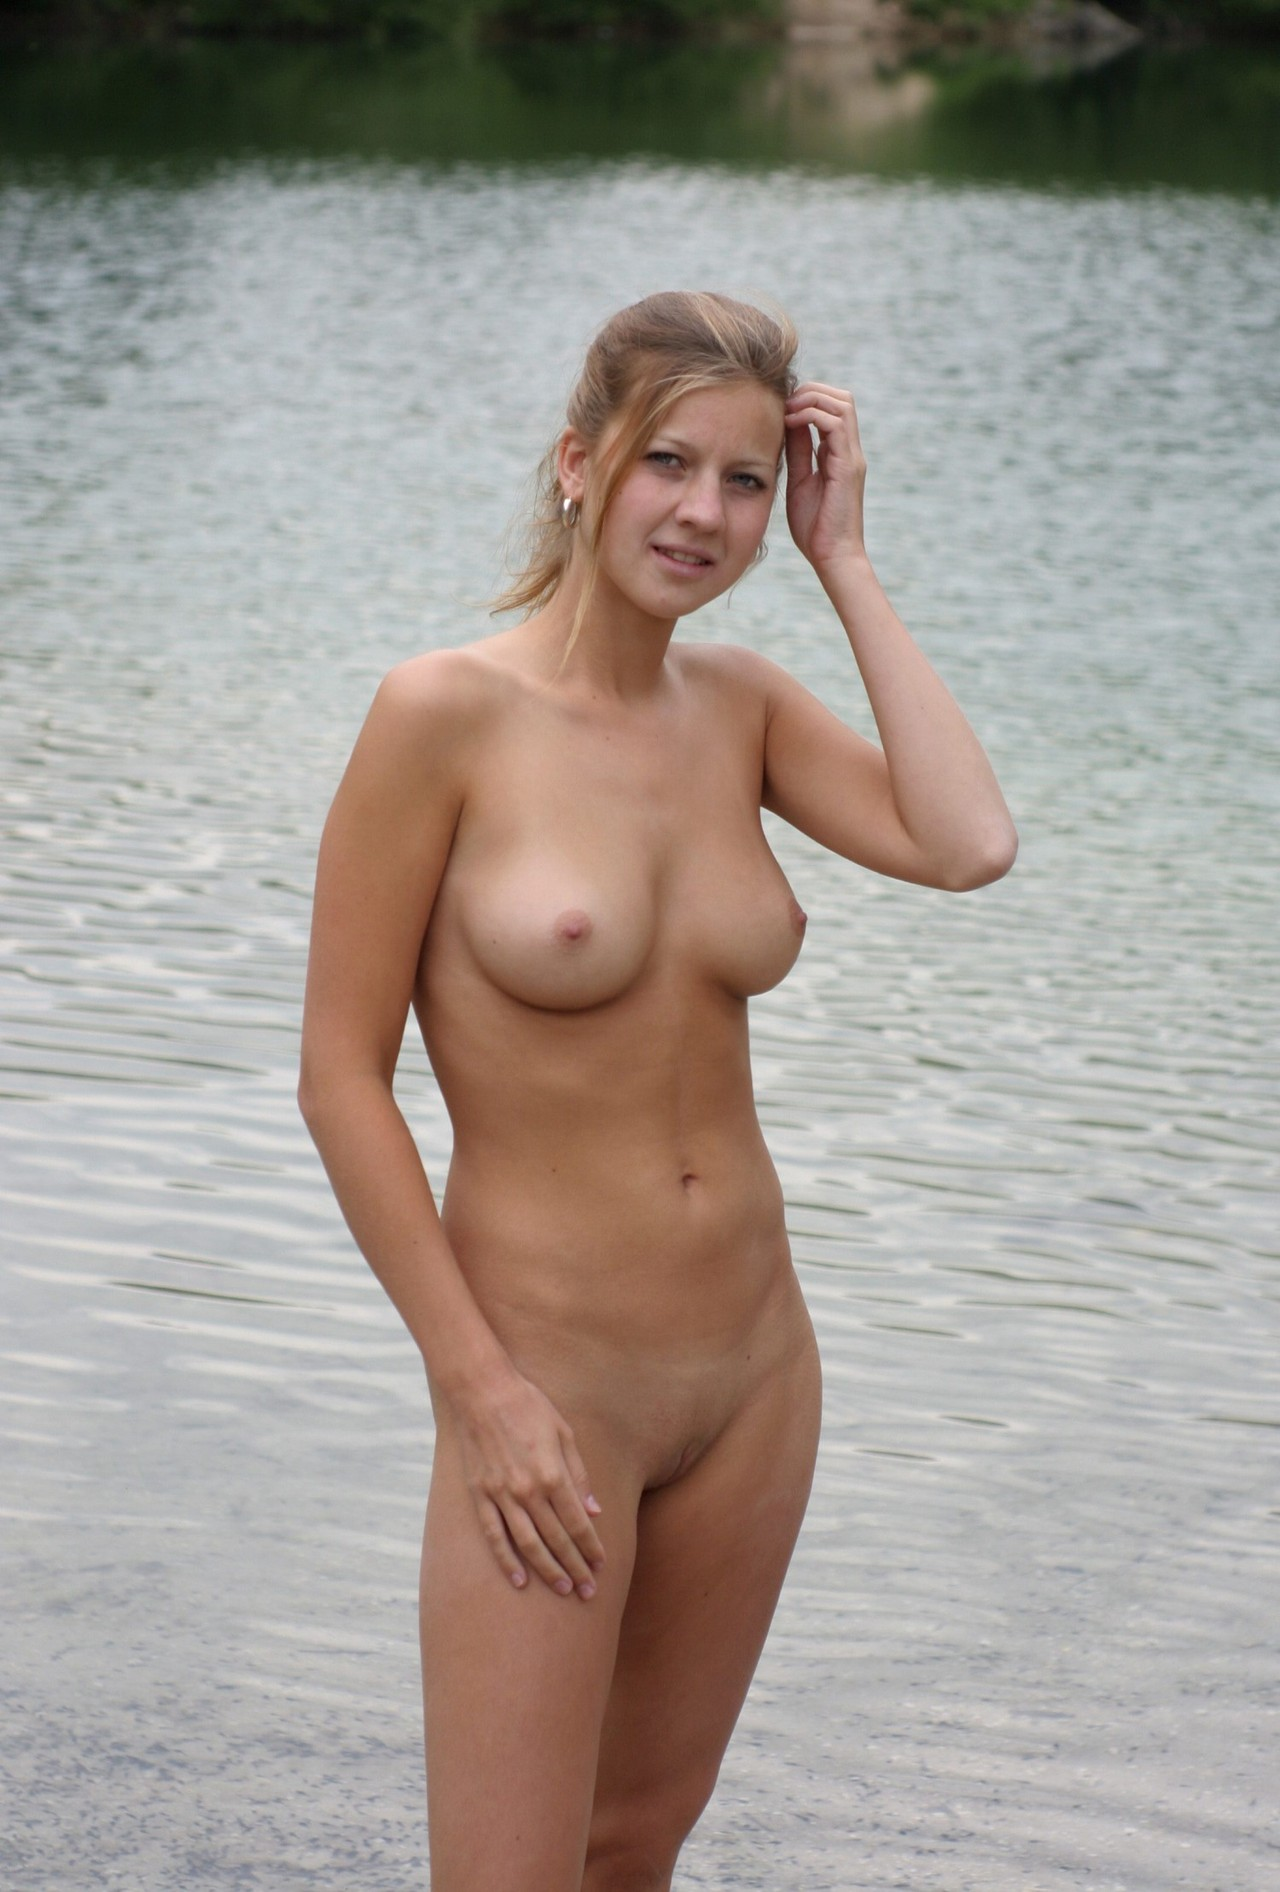 50 year old naked women pictures